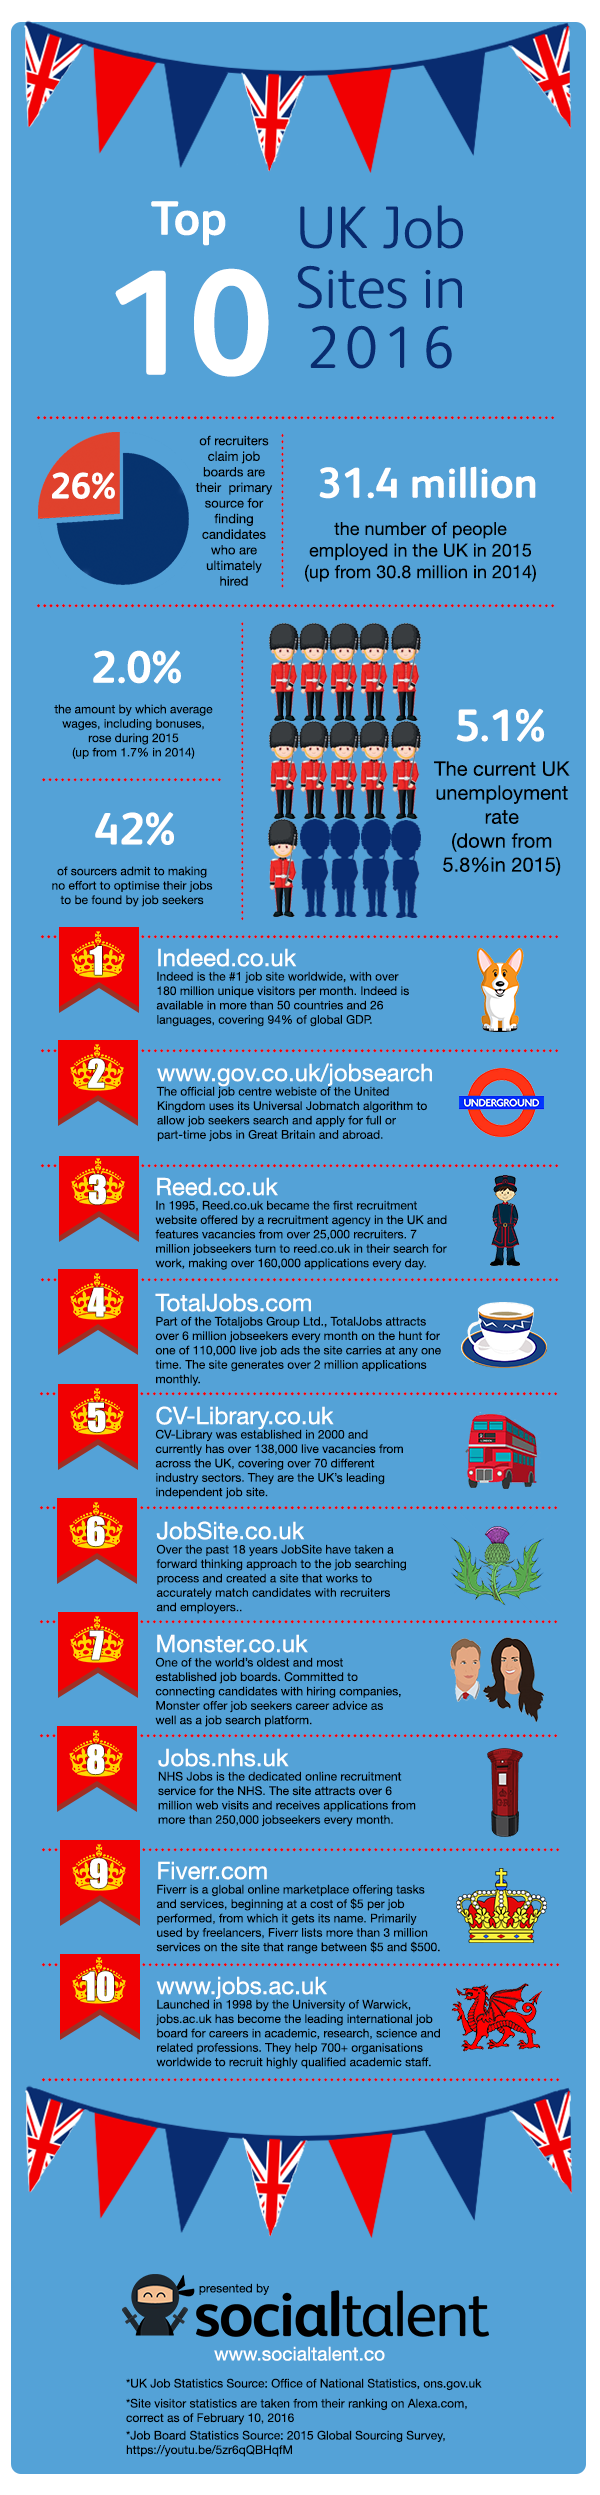 top uk job boards of  top 10 uk job boards 2016 infographic